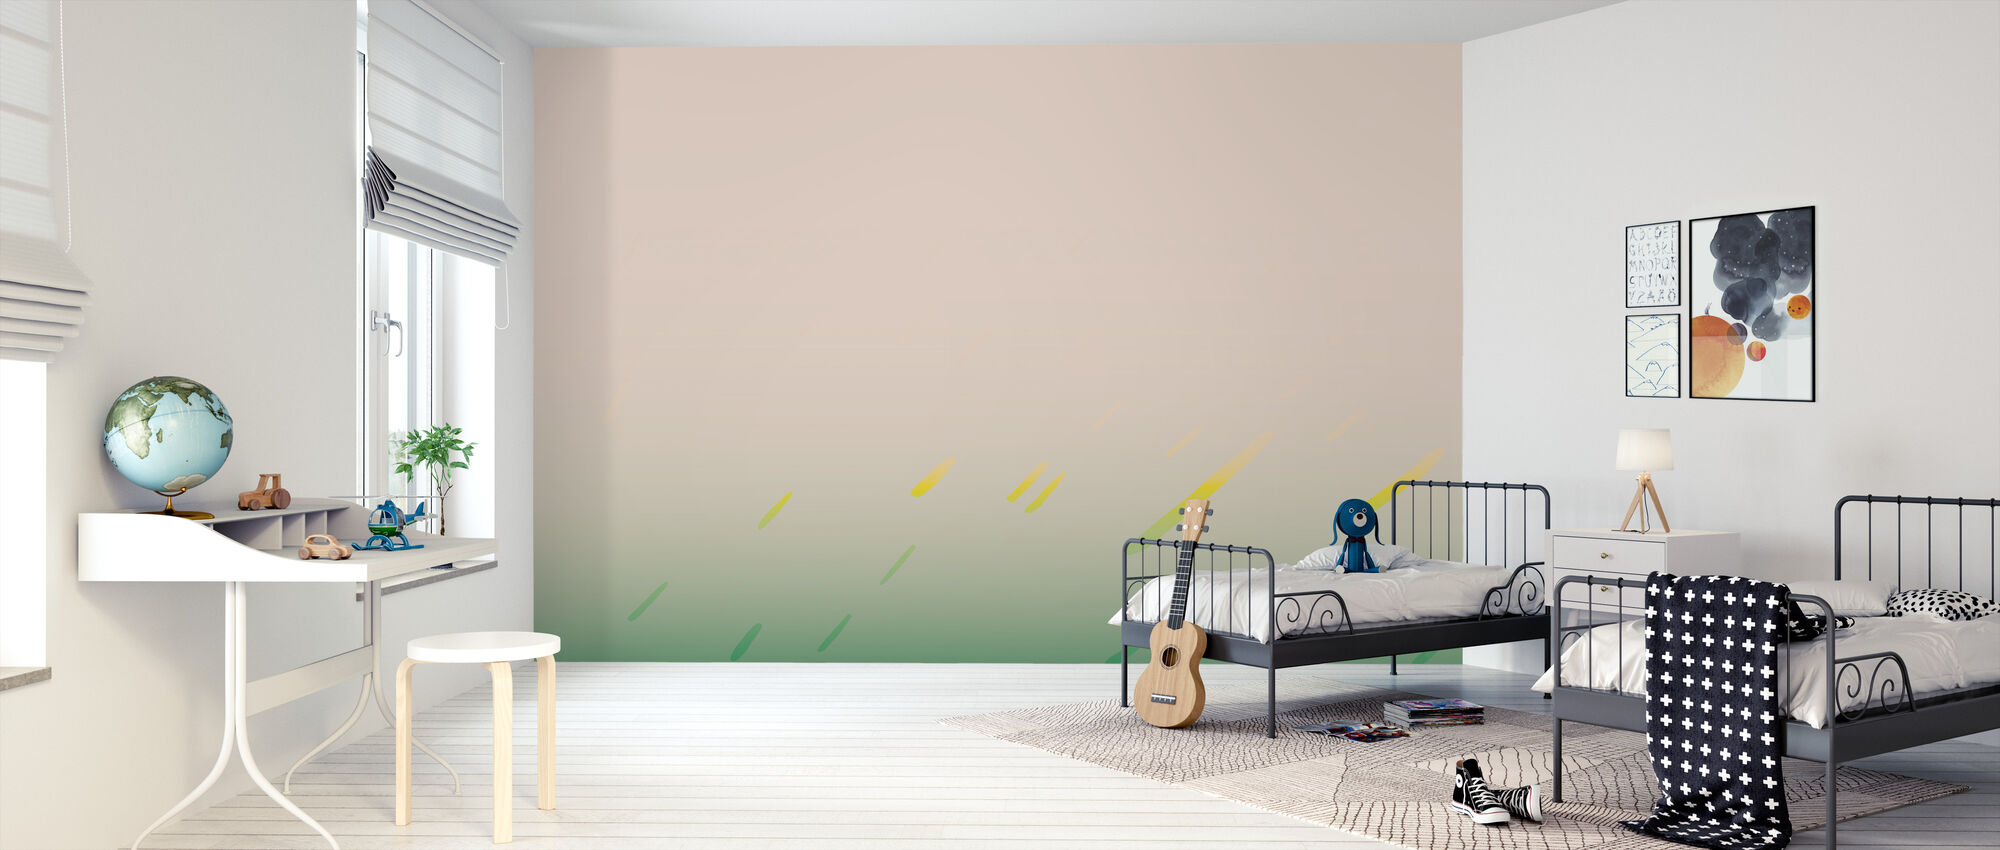 Thunder Rain - Wallpaper - Kids Room